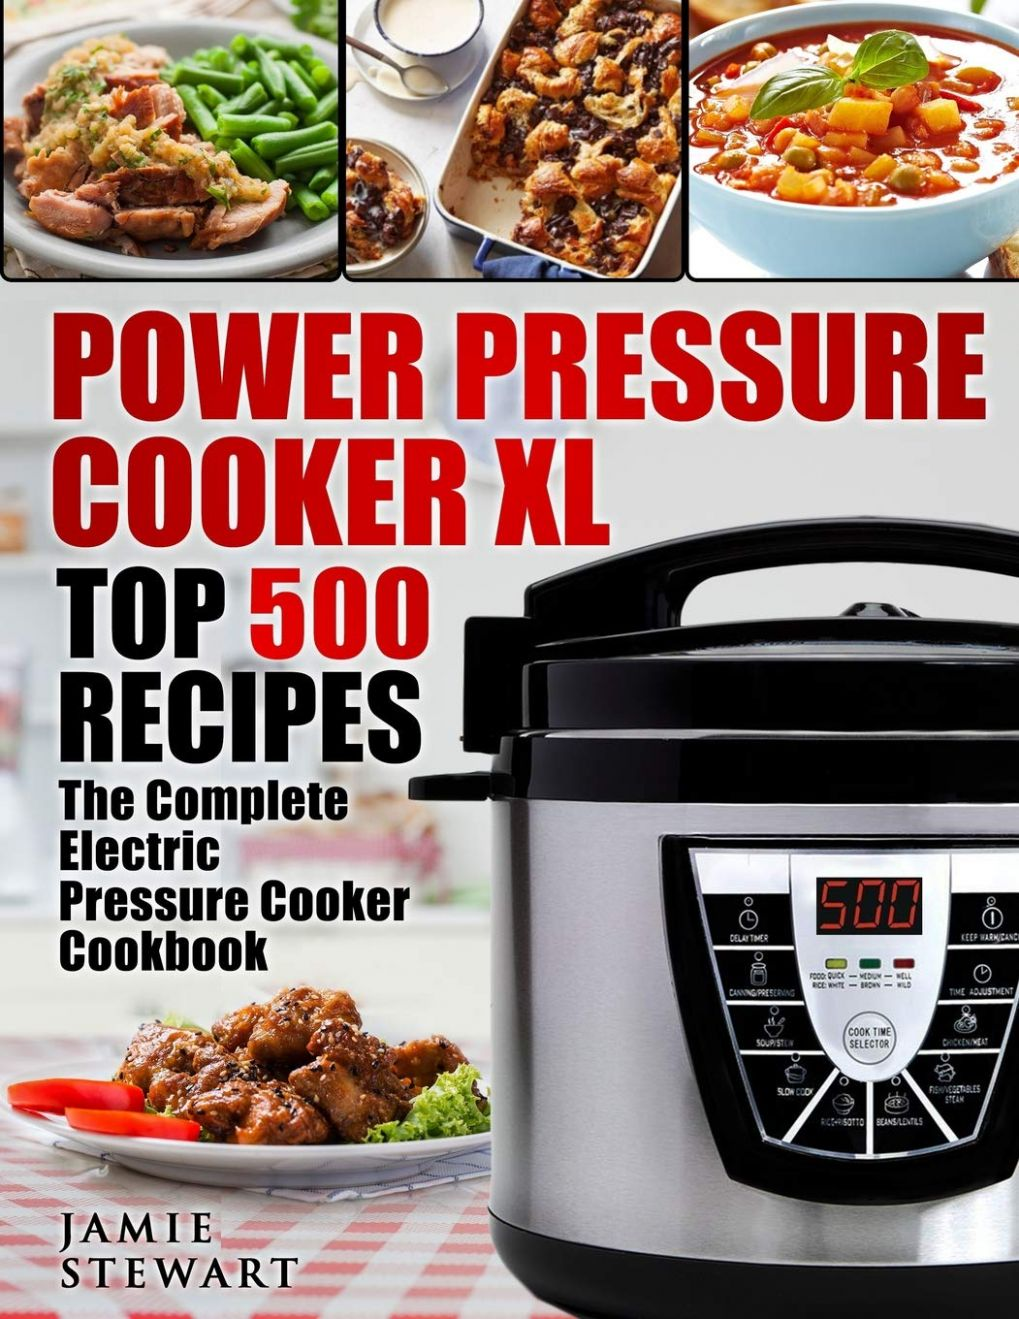 Power Pressure Cooker XL Top 10 Recipes:  Complete Electric ..